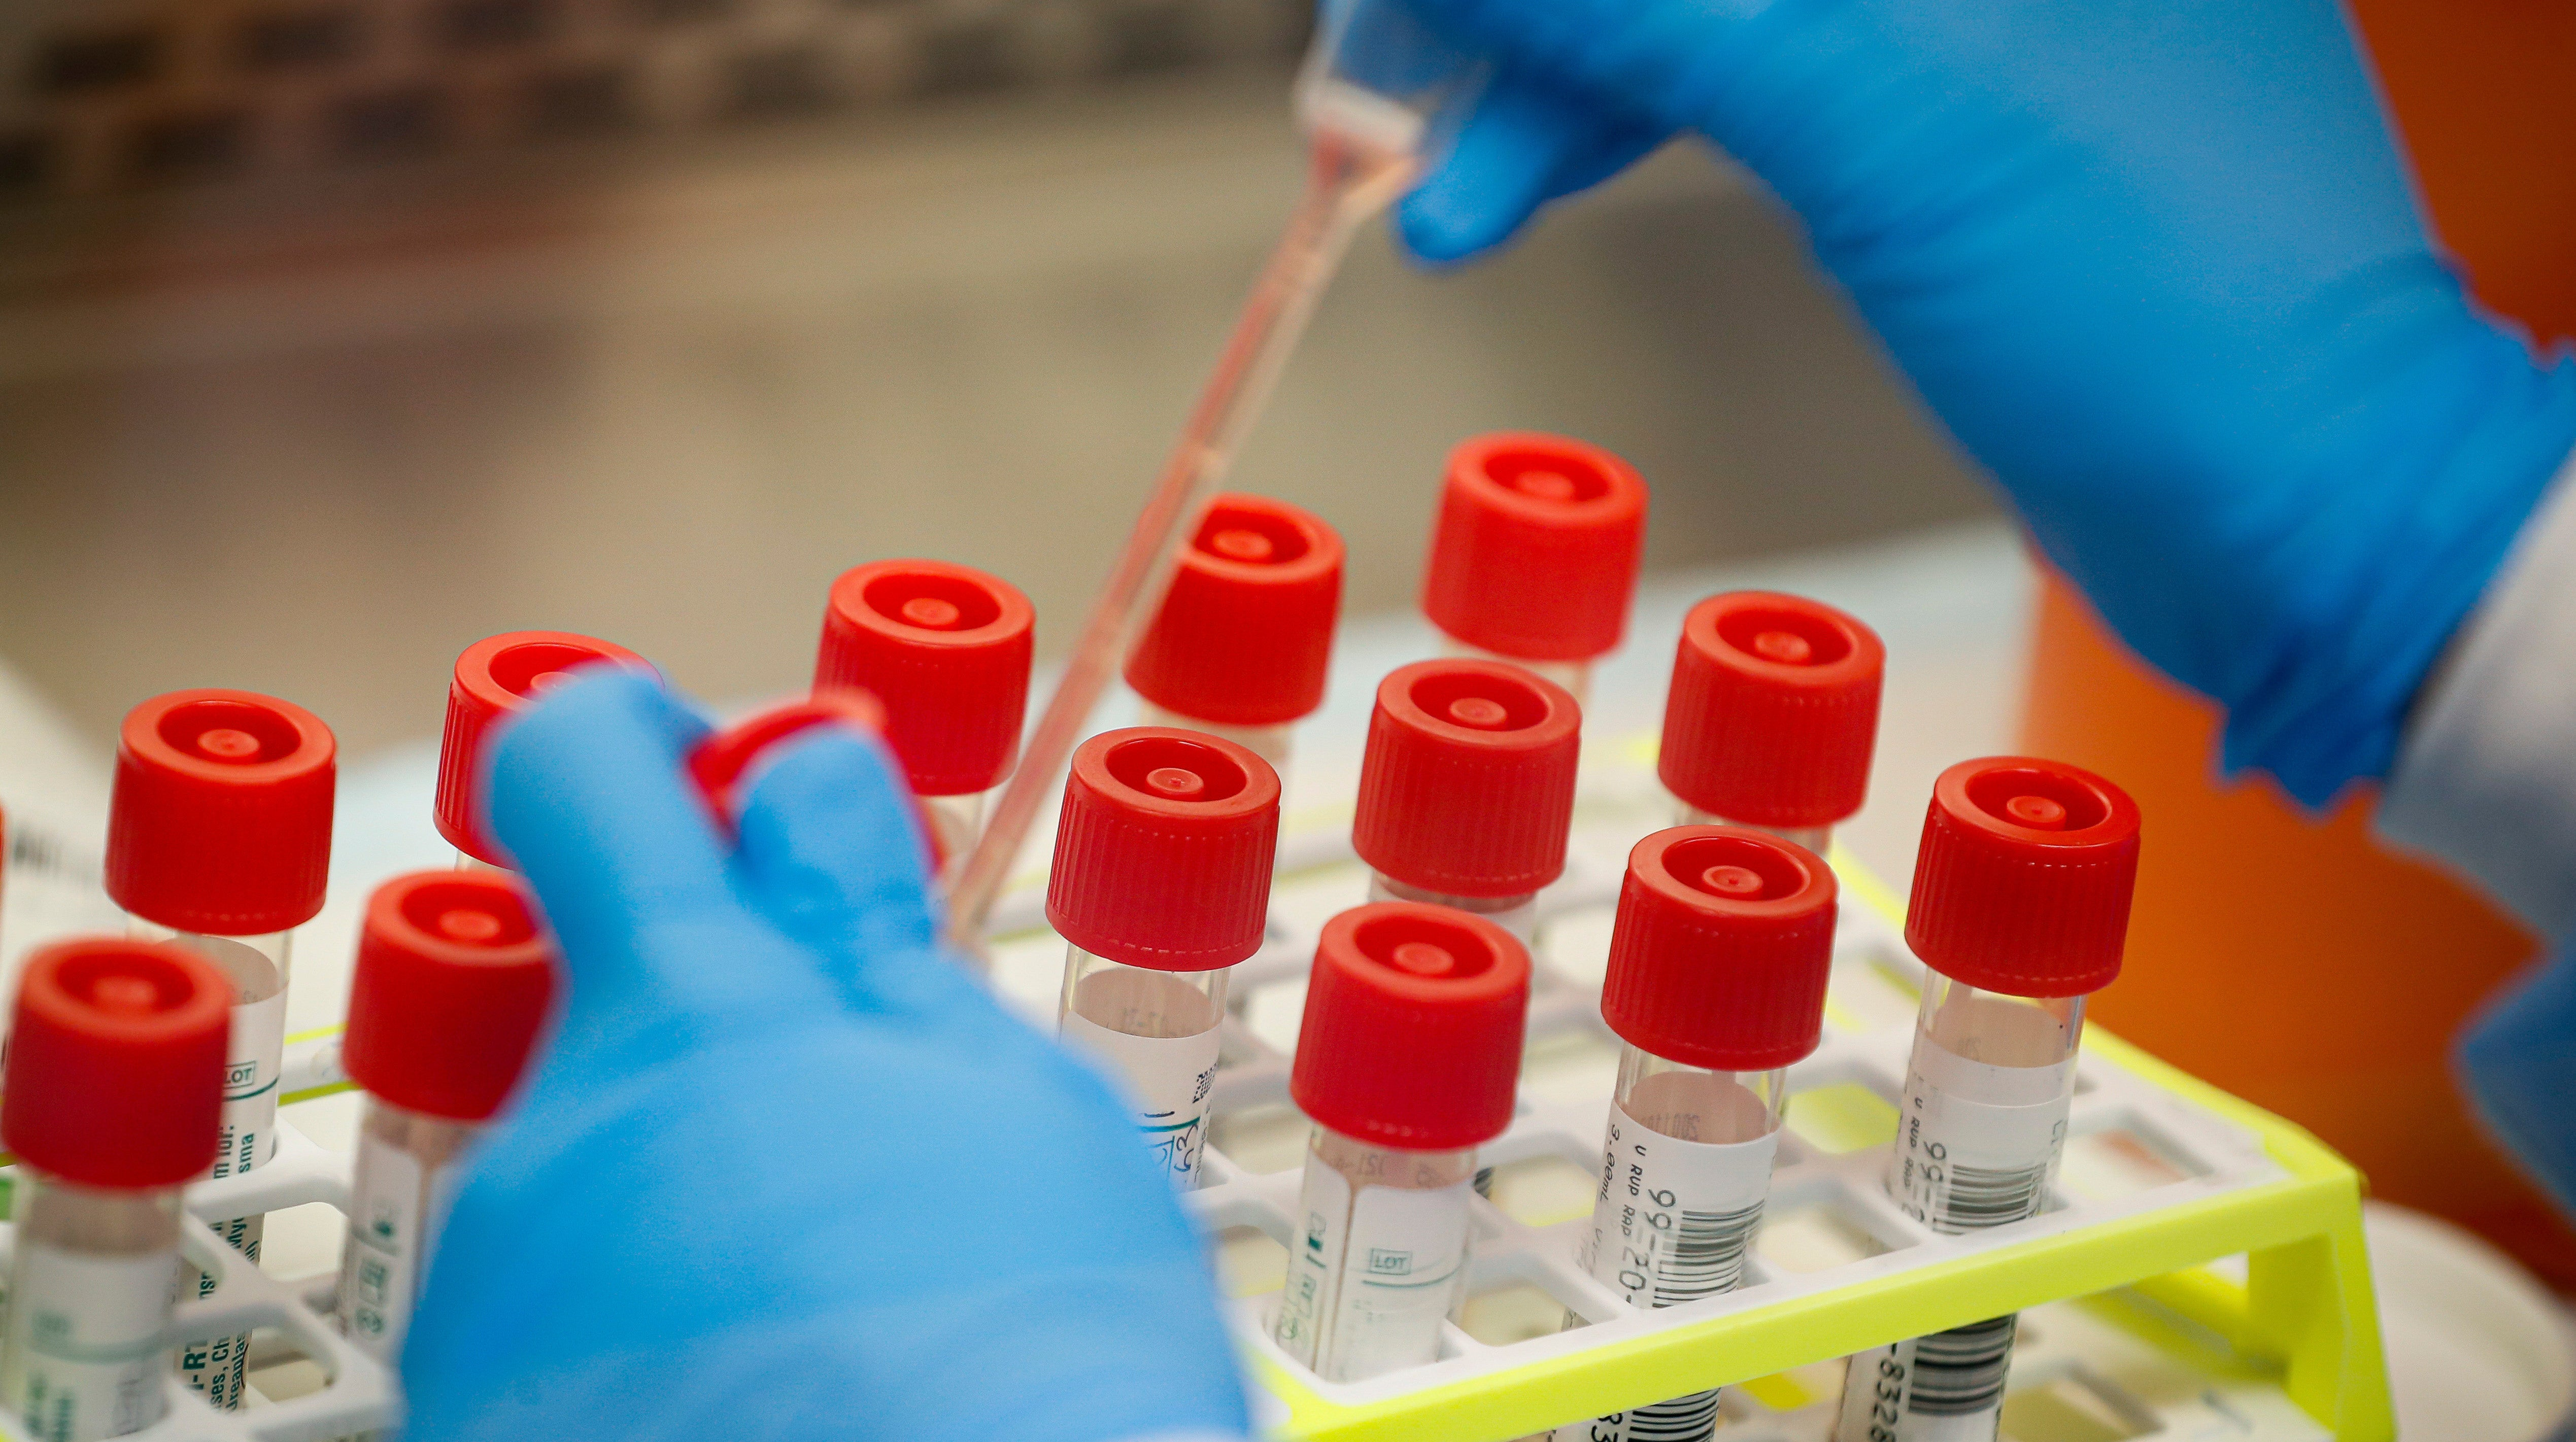 Can Scientists Justify Intentional Coronavirus Infections To Speed Vaccine Creation?